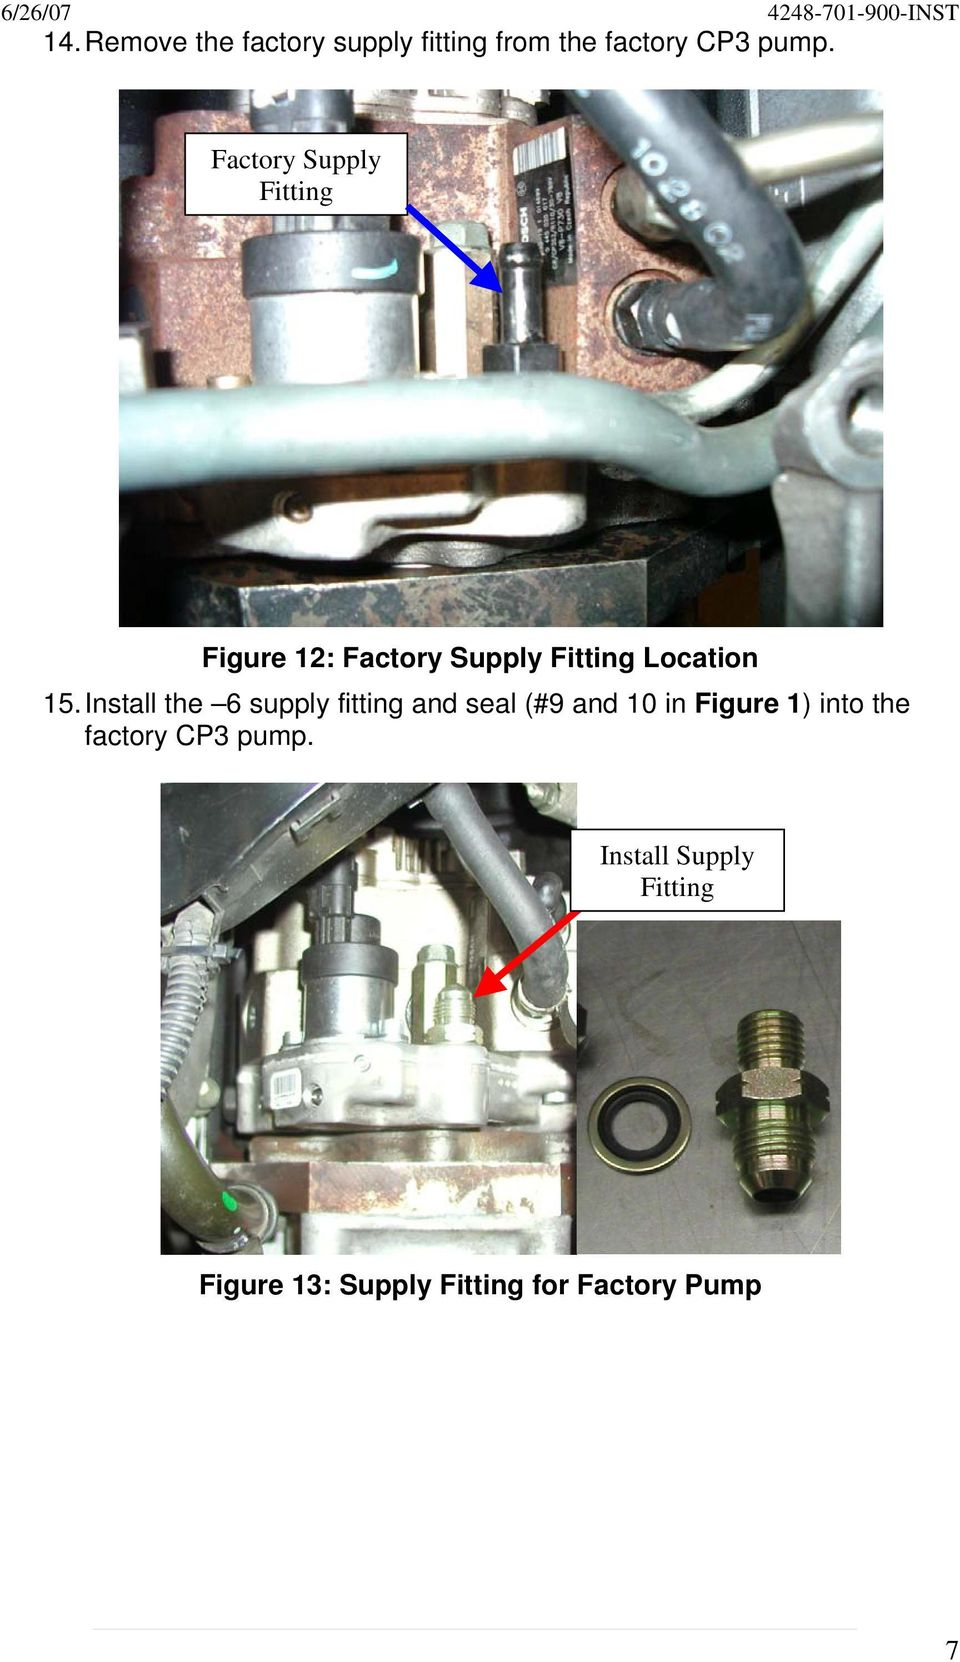 Install the 6 supply fitting and seal (#9 and 10 in Figure 1) into the